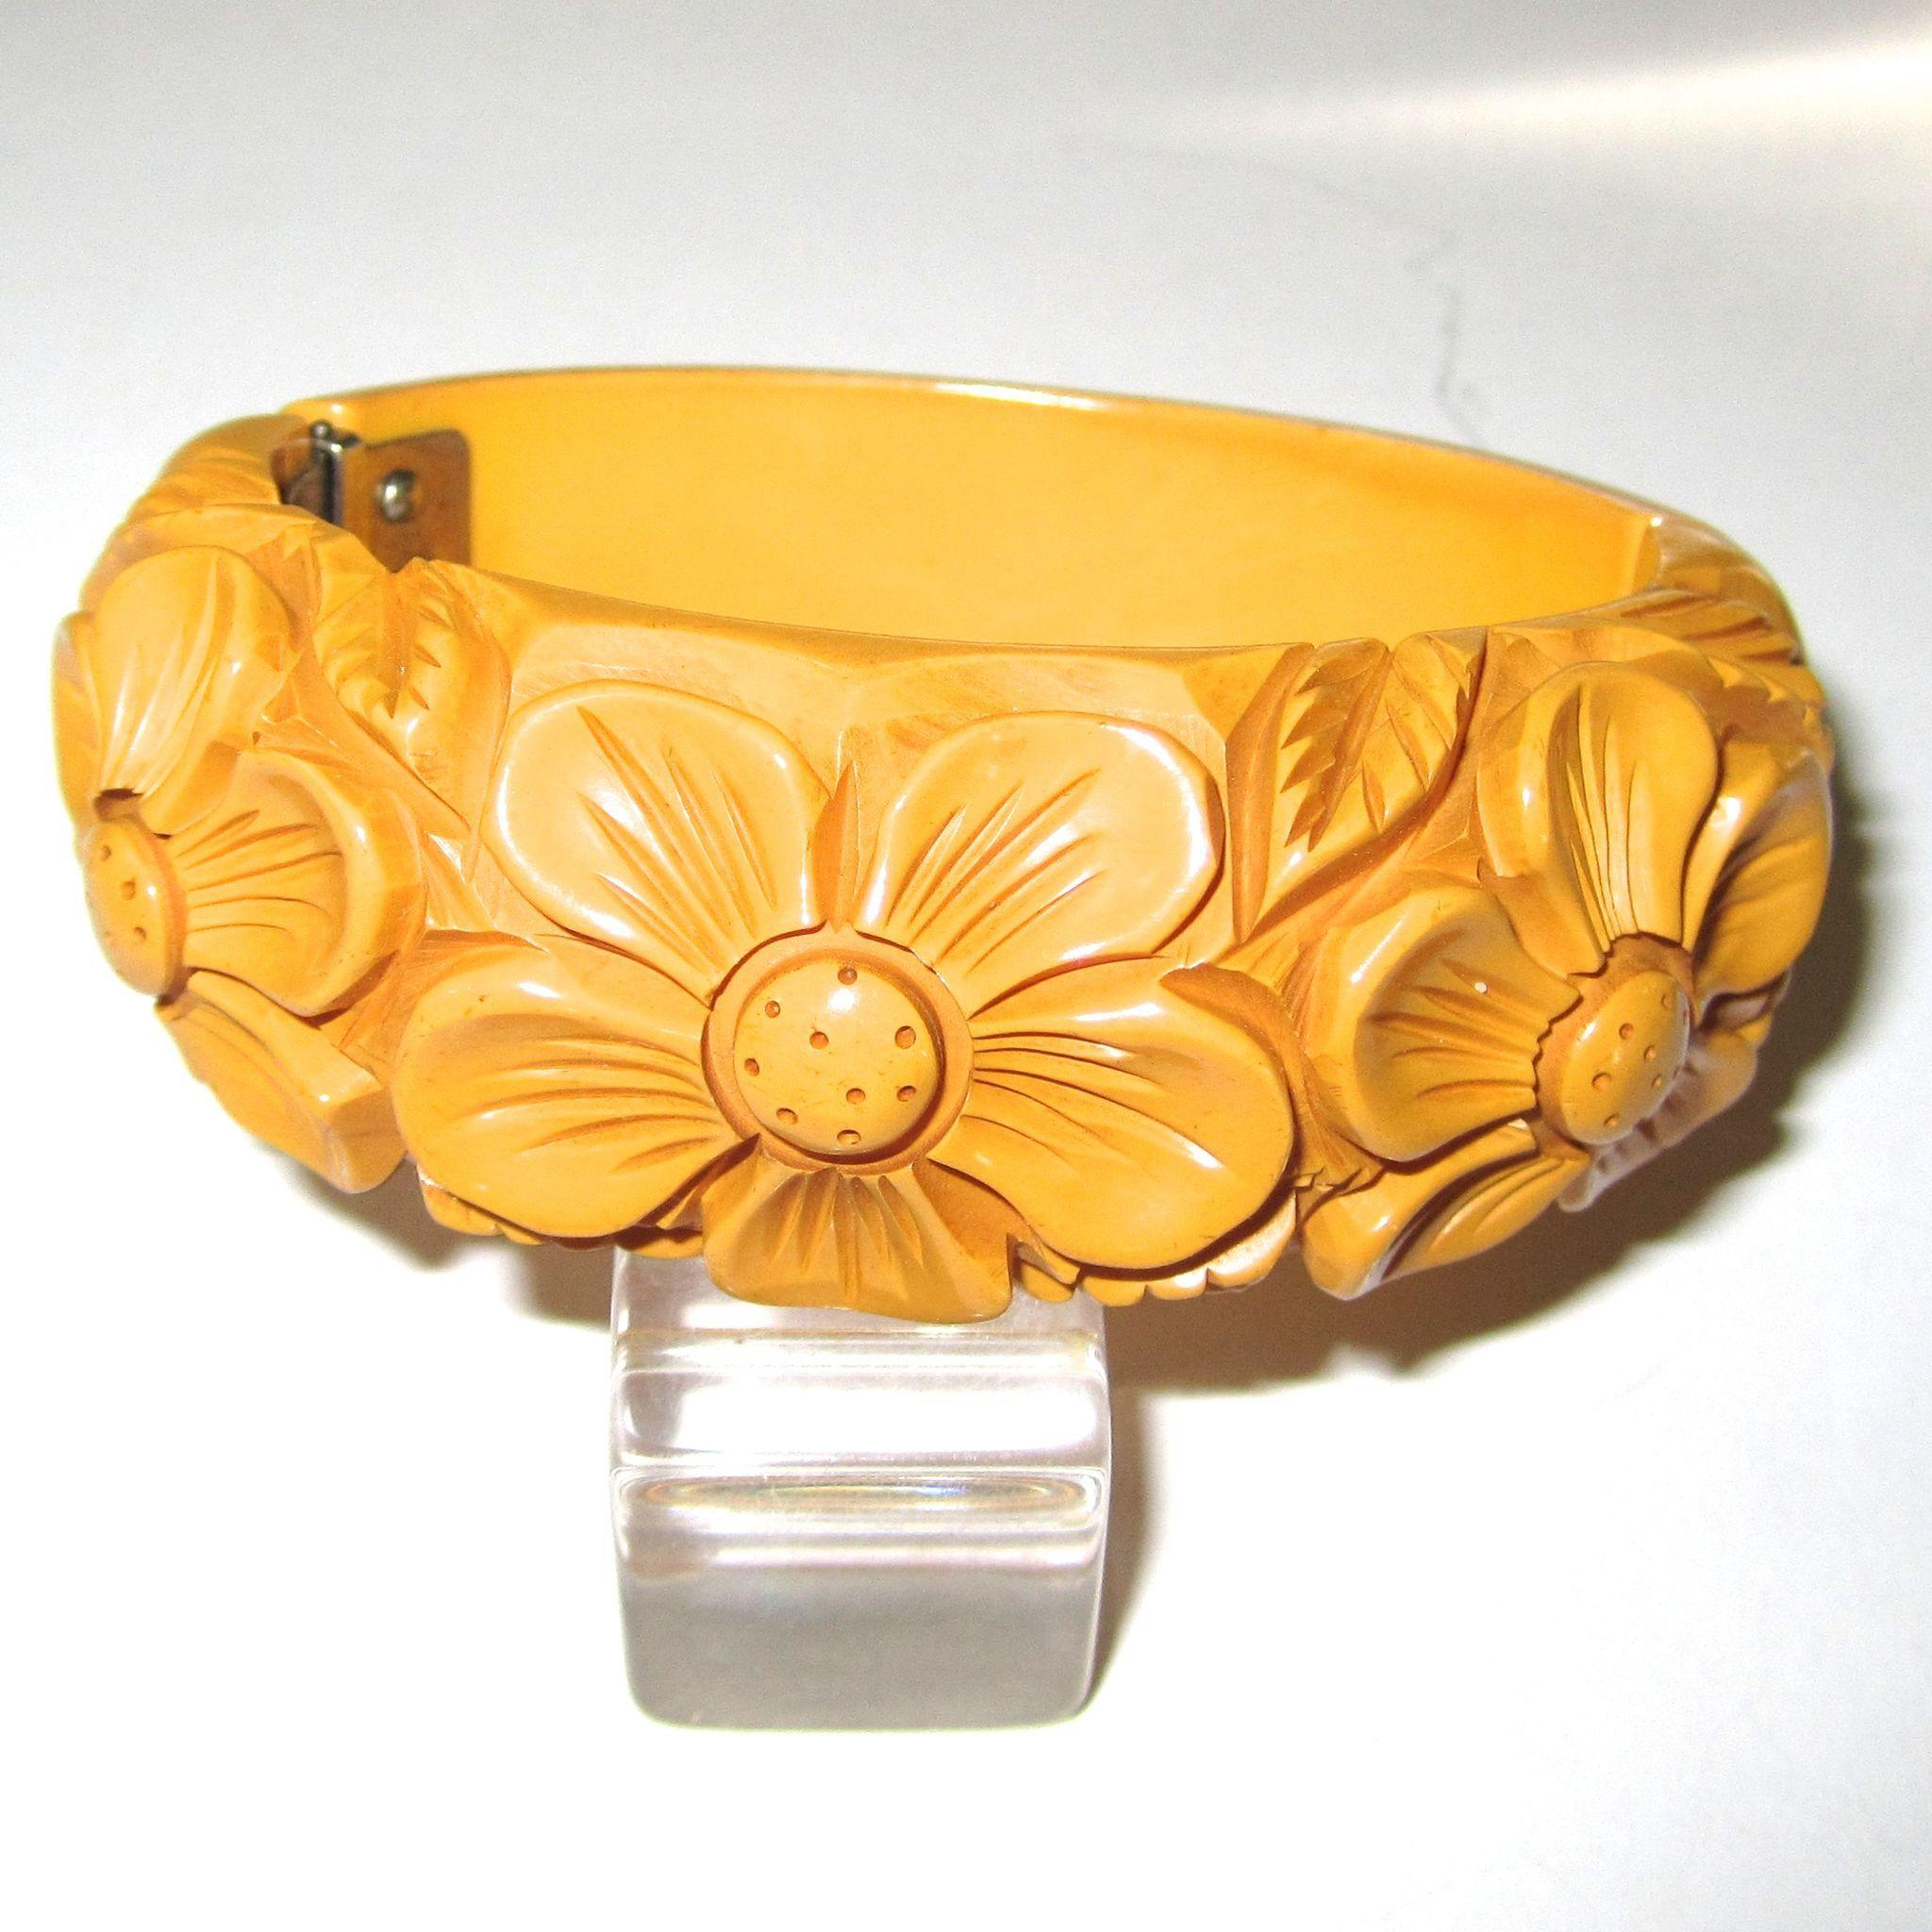 Heavily Deeply Carved Dark Cream Bakelite Hinge Bracelet Clamper